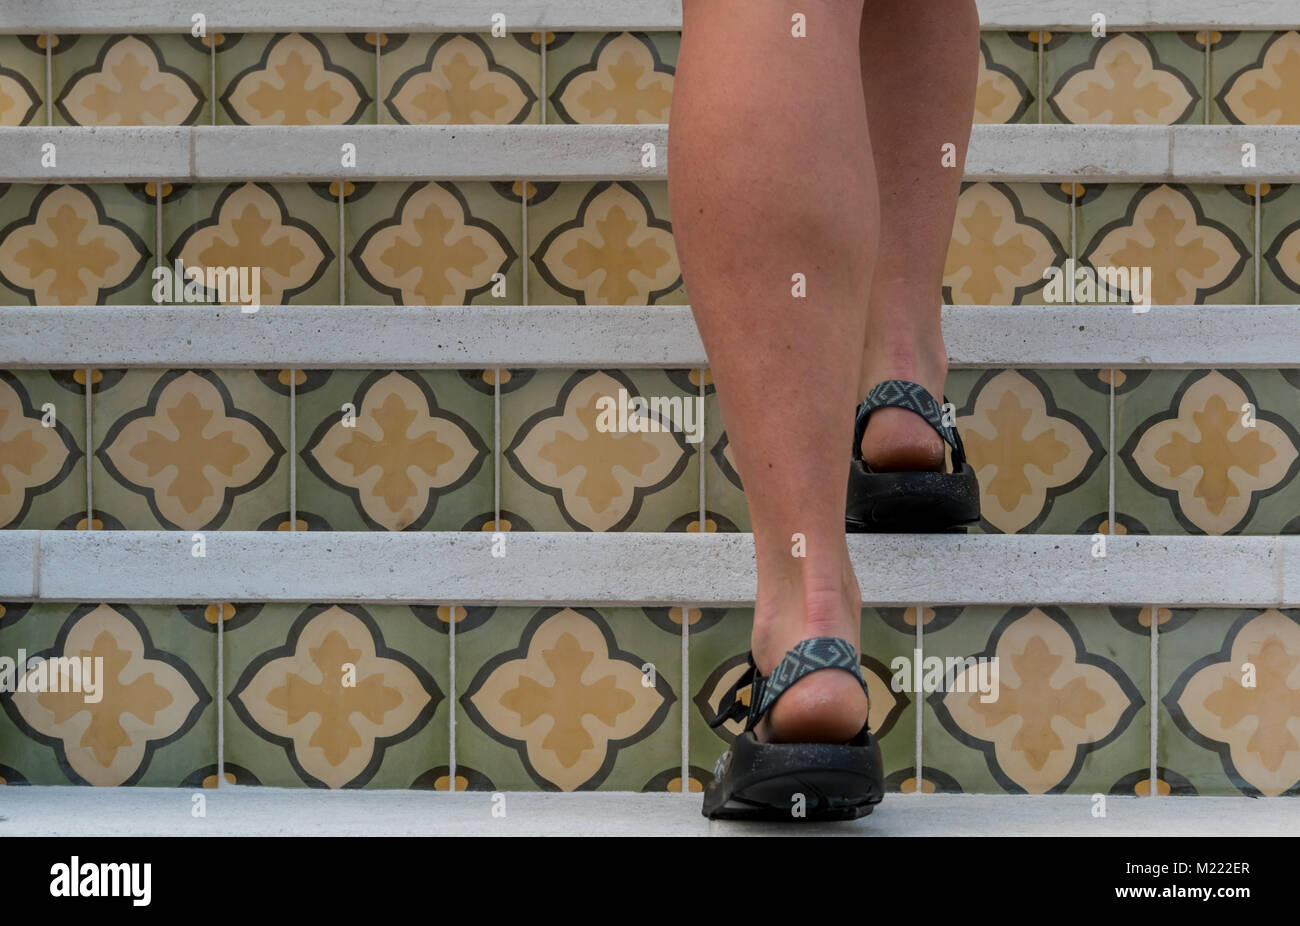 Woman Walks up Patterned Tile Staircase in Sandals - Stock Image